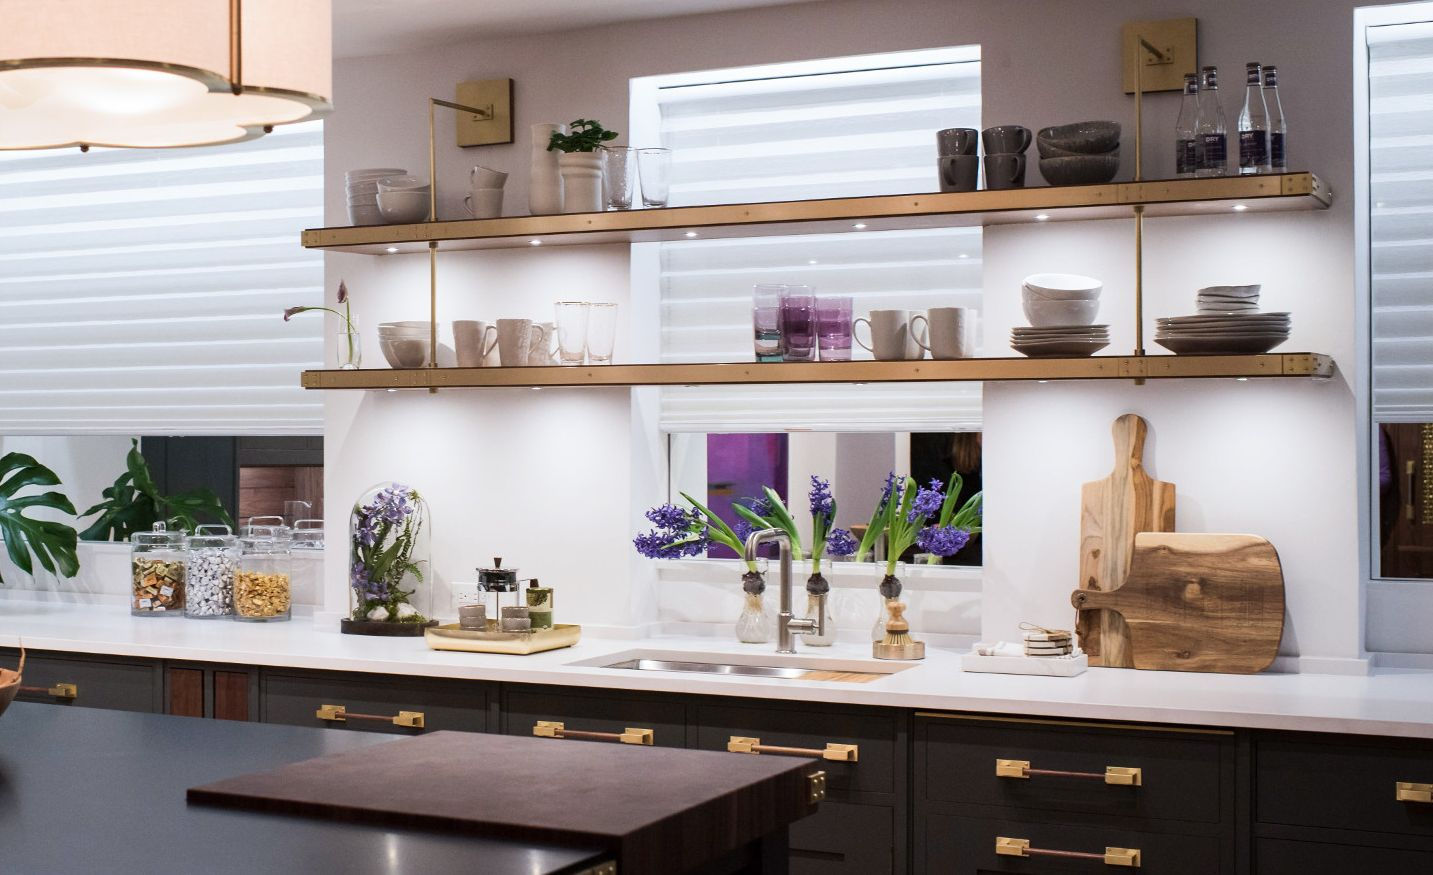 Brass detailed, open shelving provides airy feel to the space.